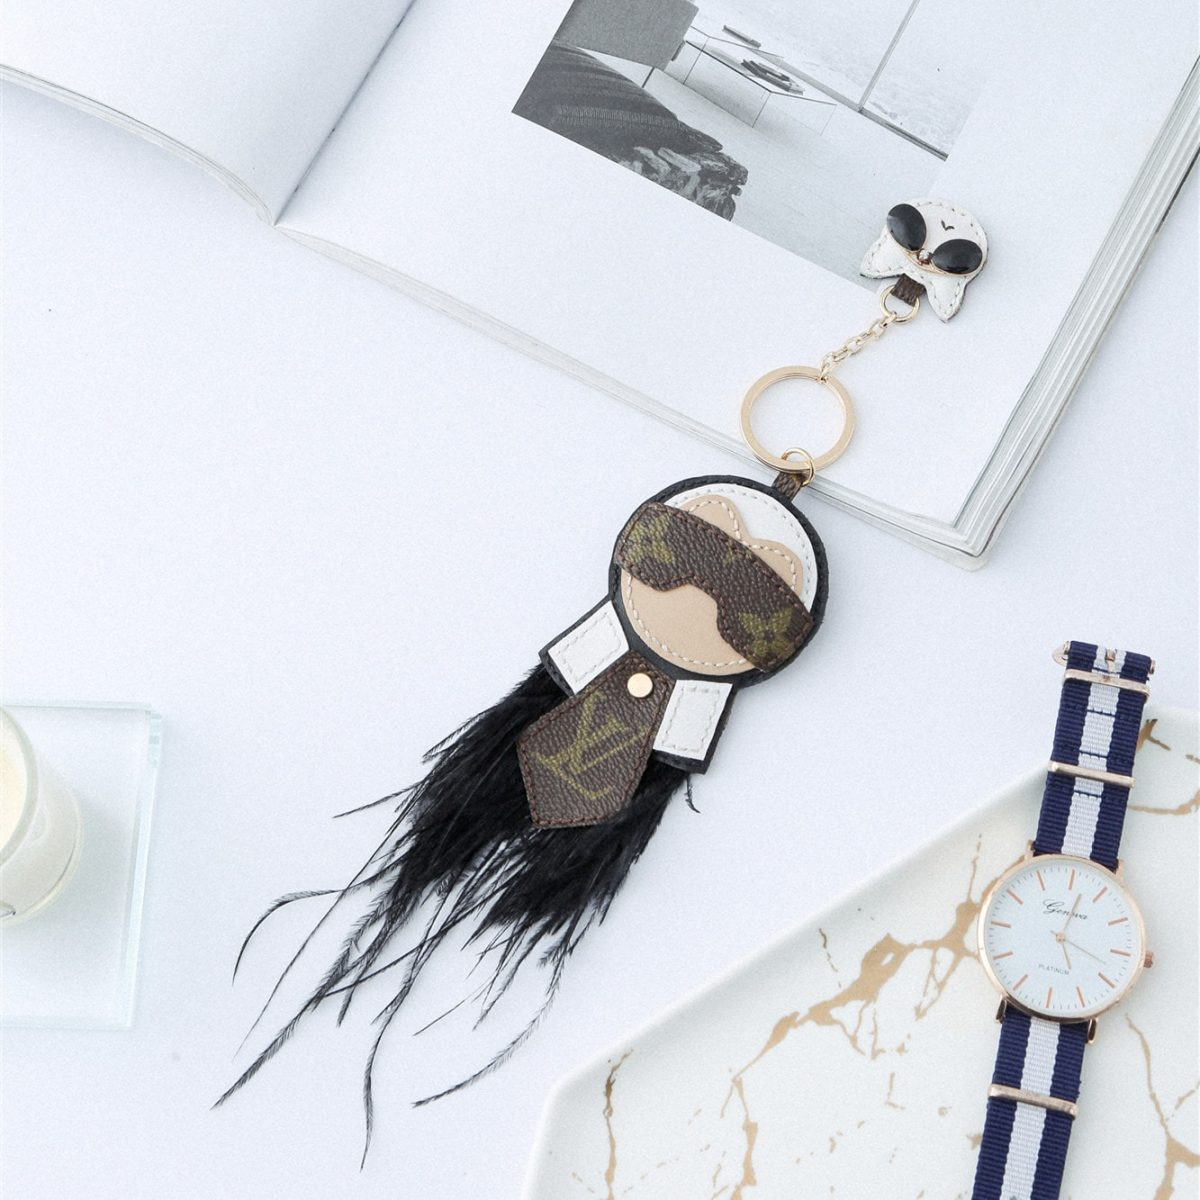 Upcycled Louis Vuitton Karl Lagerfeld And His Cat Keychain